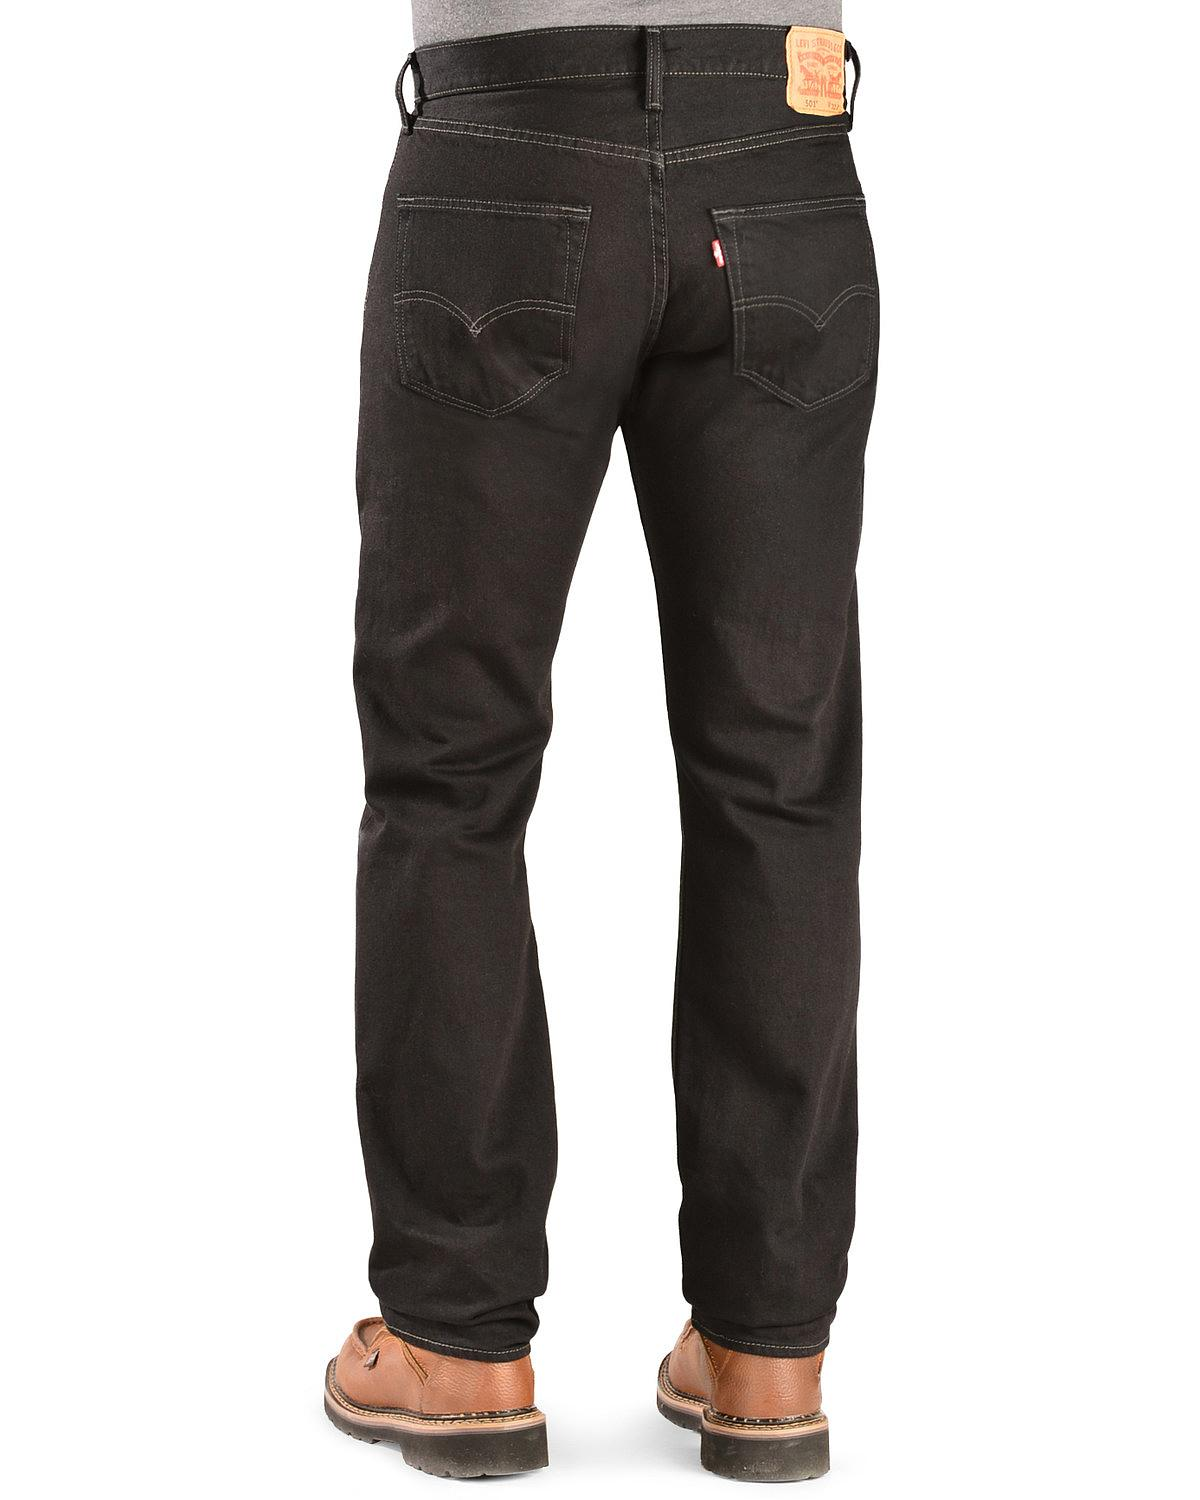 levis men 39 s levi 39 s 501 jeans original prewashed 00501 0697 ebay. Black Bedroom Furniture Sets. Home Design Ideas